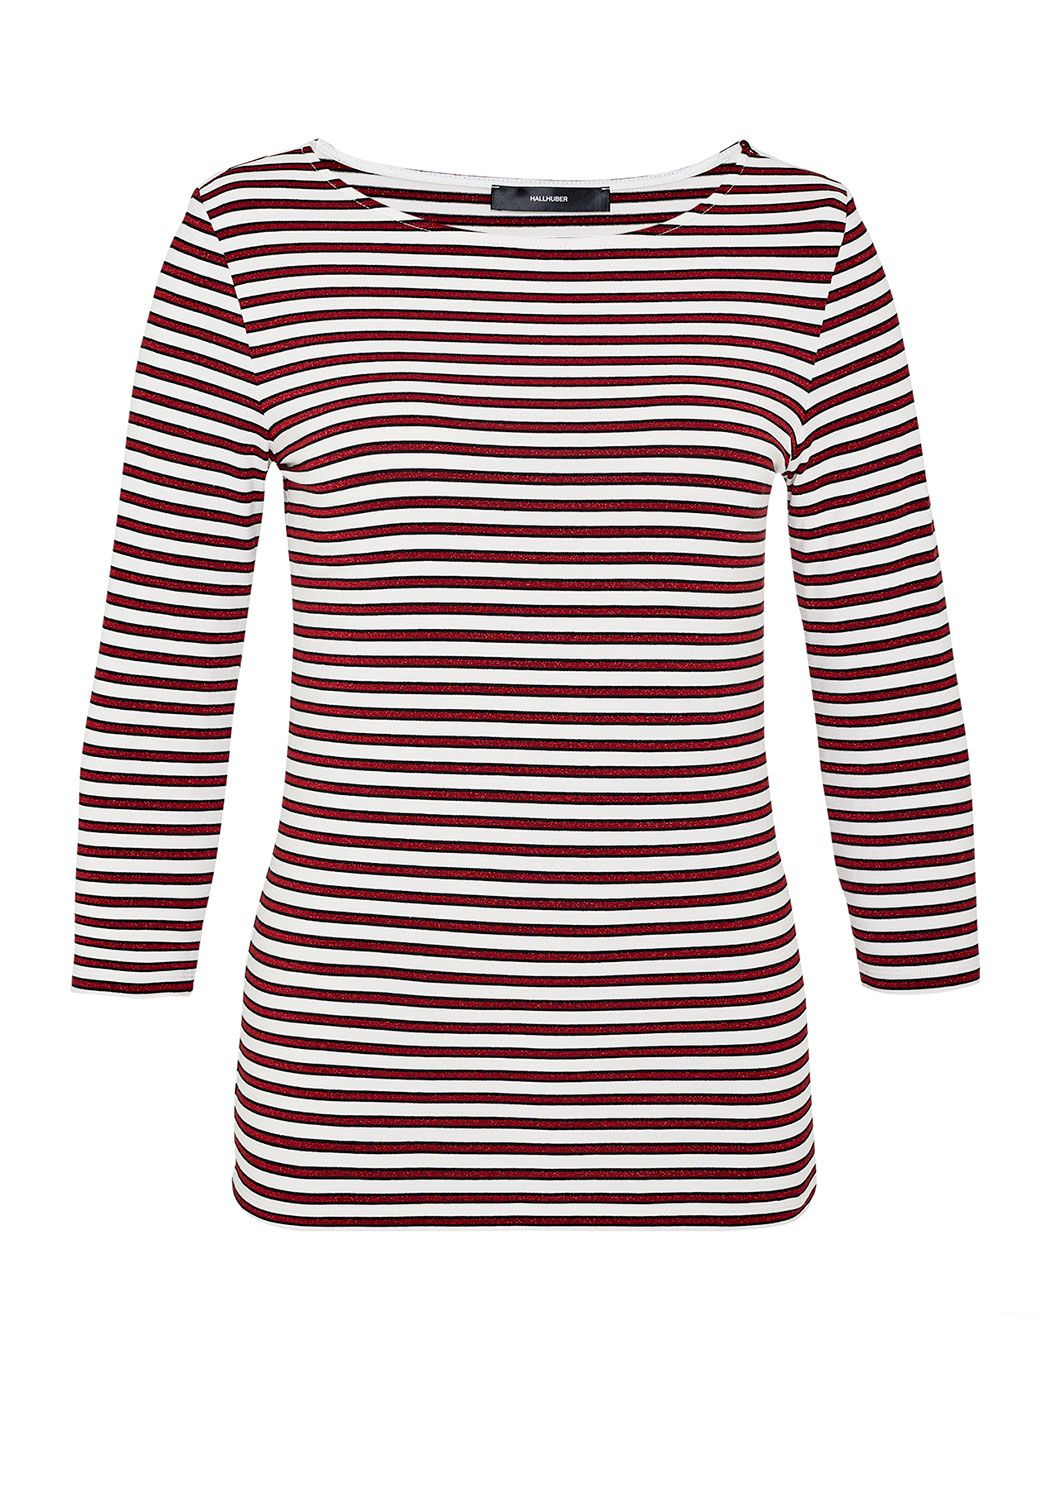 Hallhuber Stripe top with three-quarter sleeves, Red